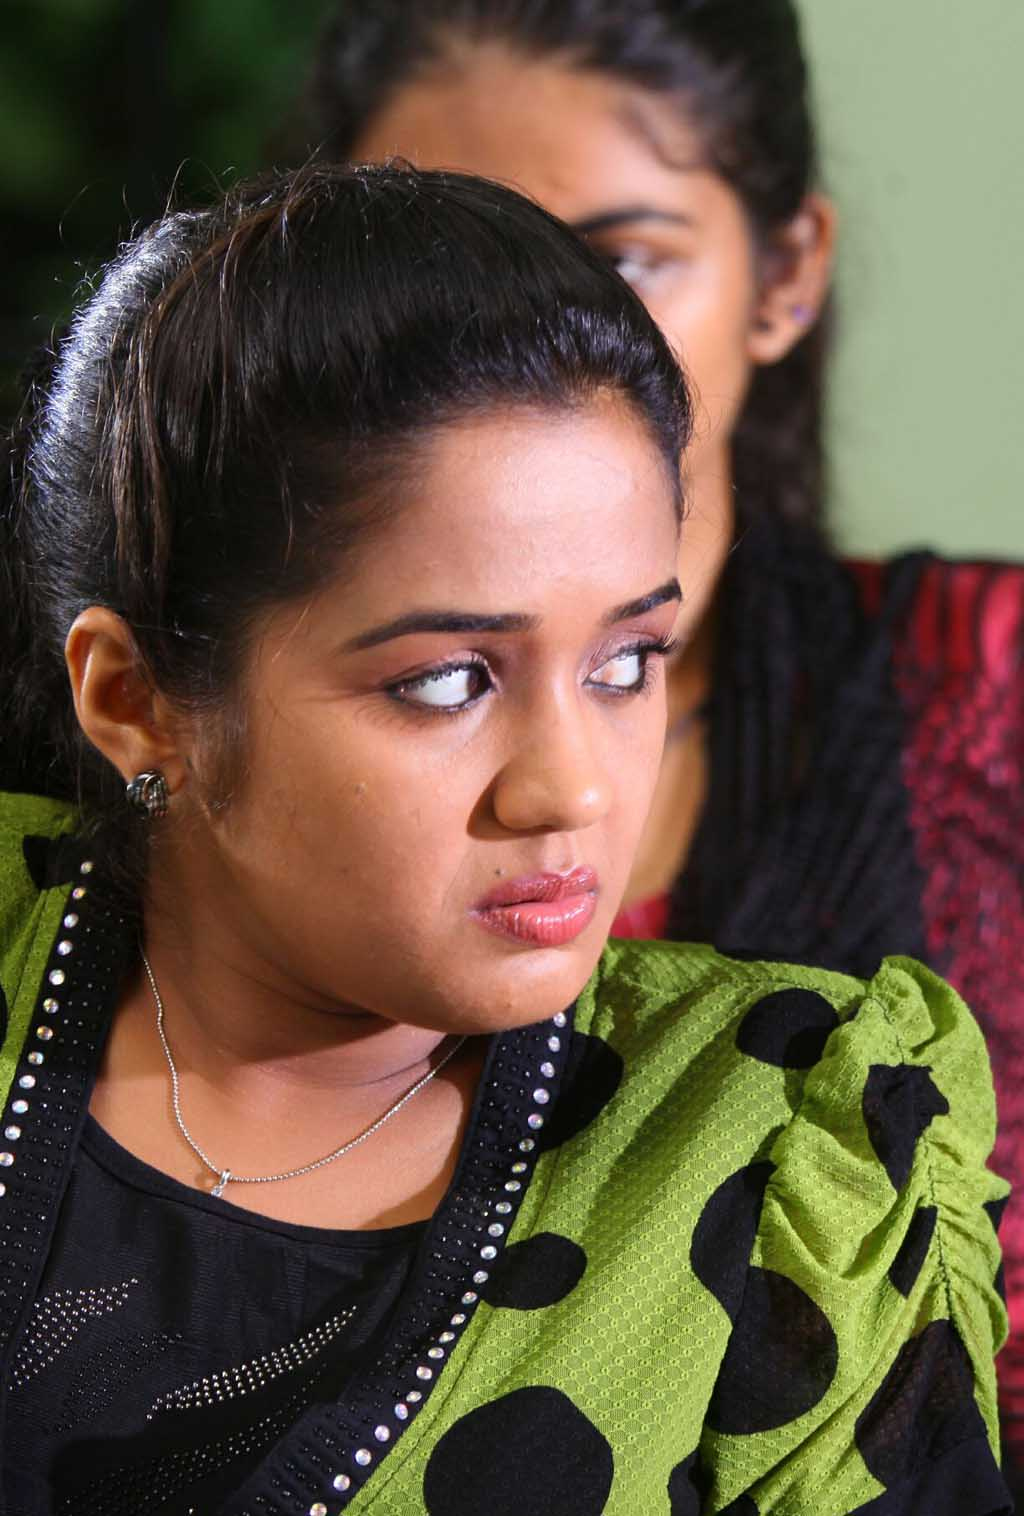 Ananya cute face photos